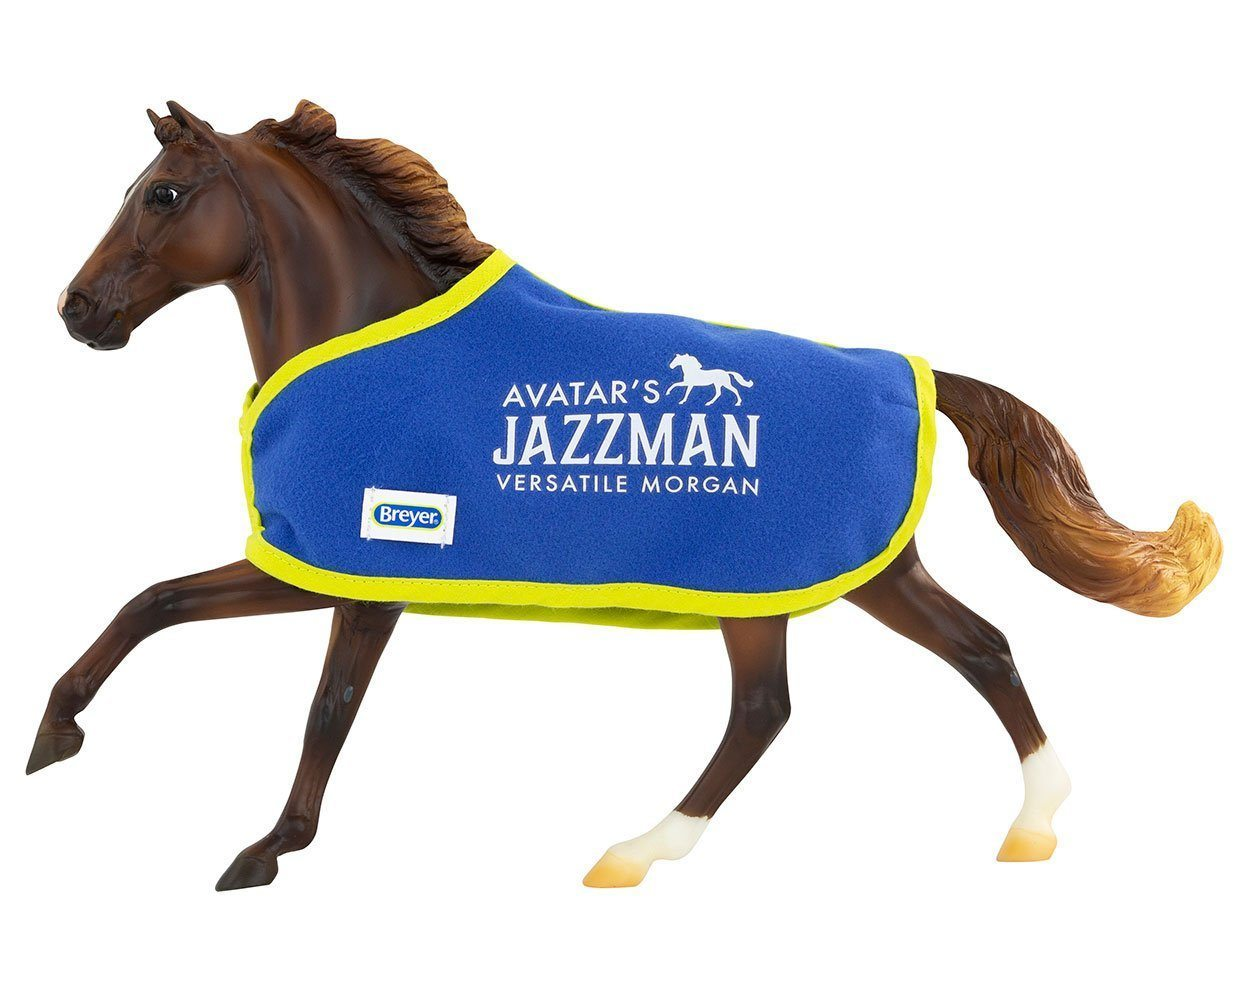 Avatars jazzman model breyer 905515 2000x